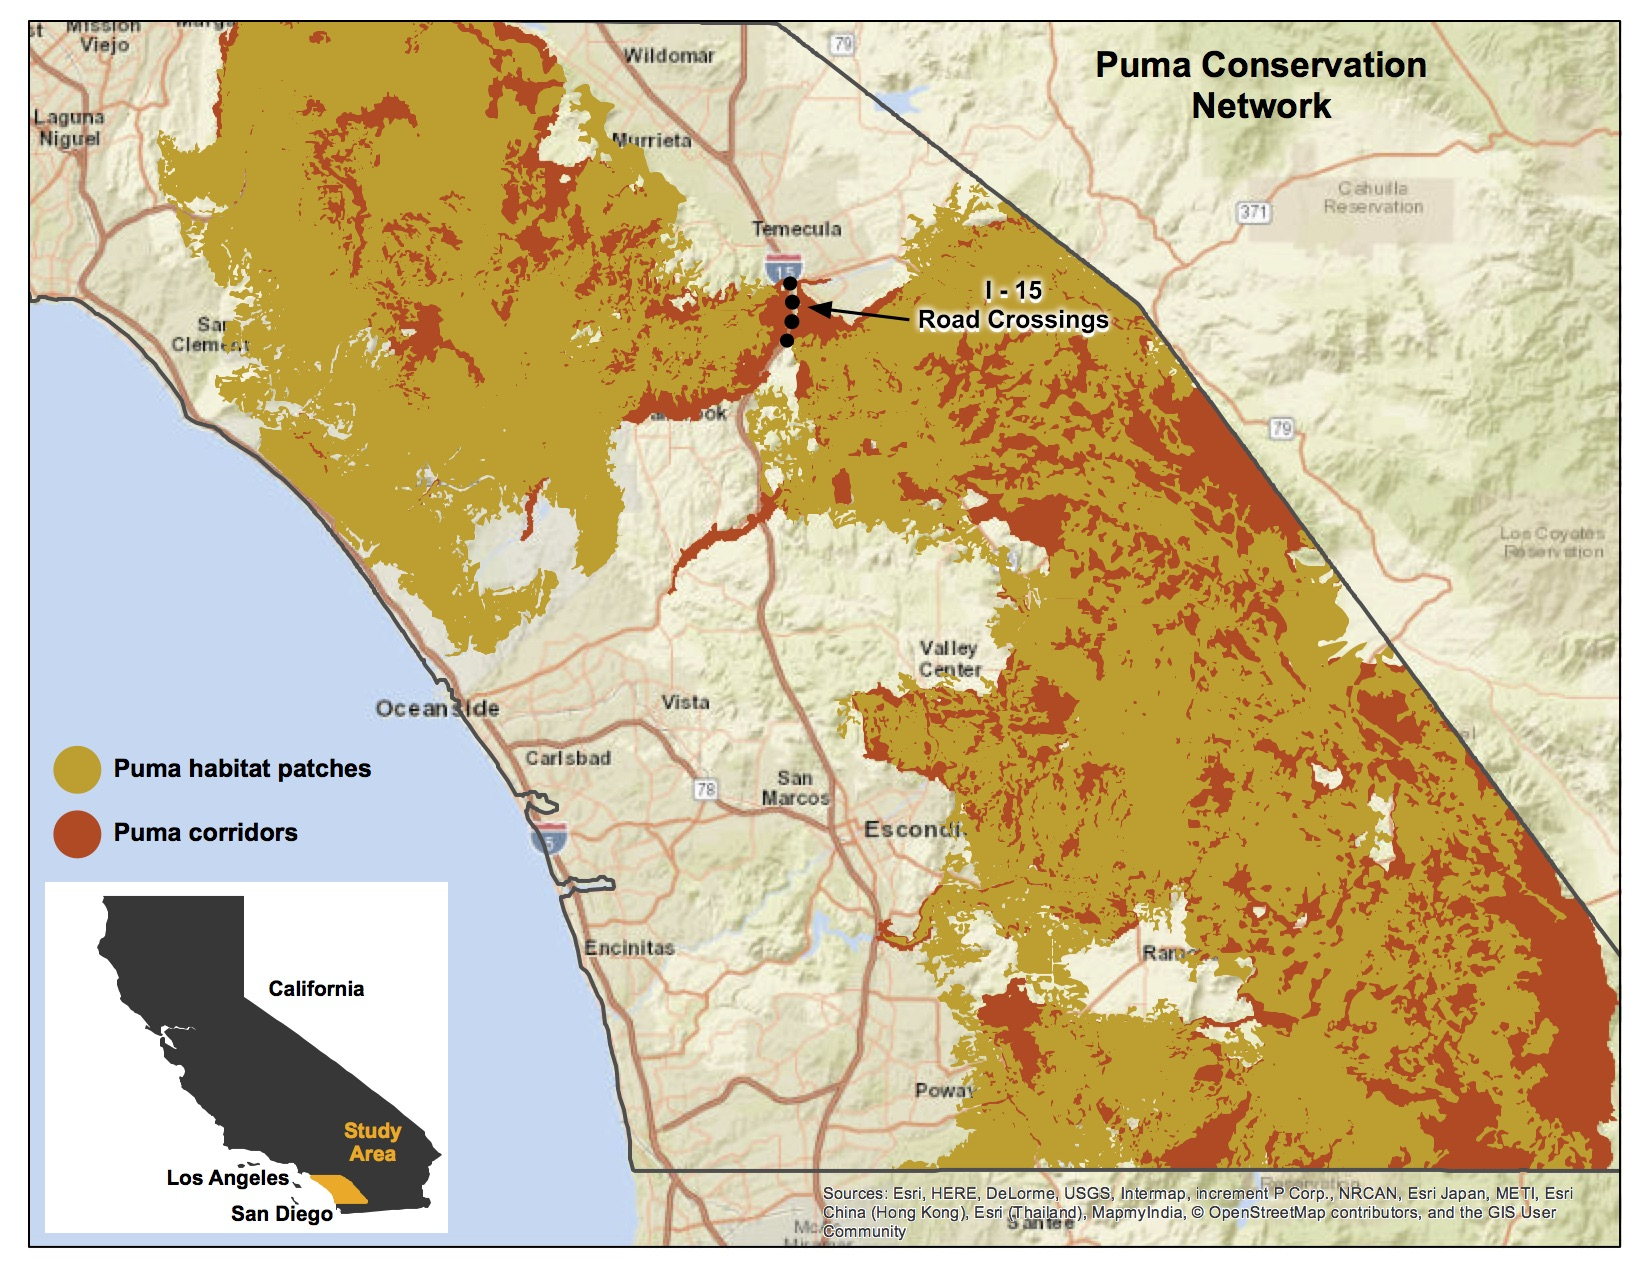 Puma conservation network